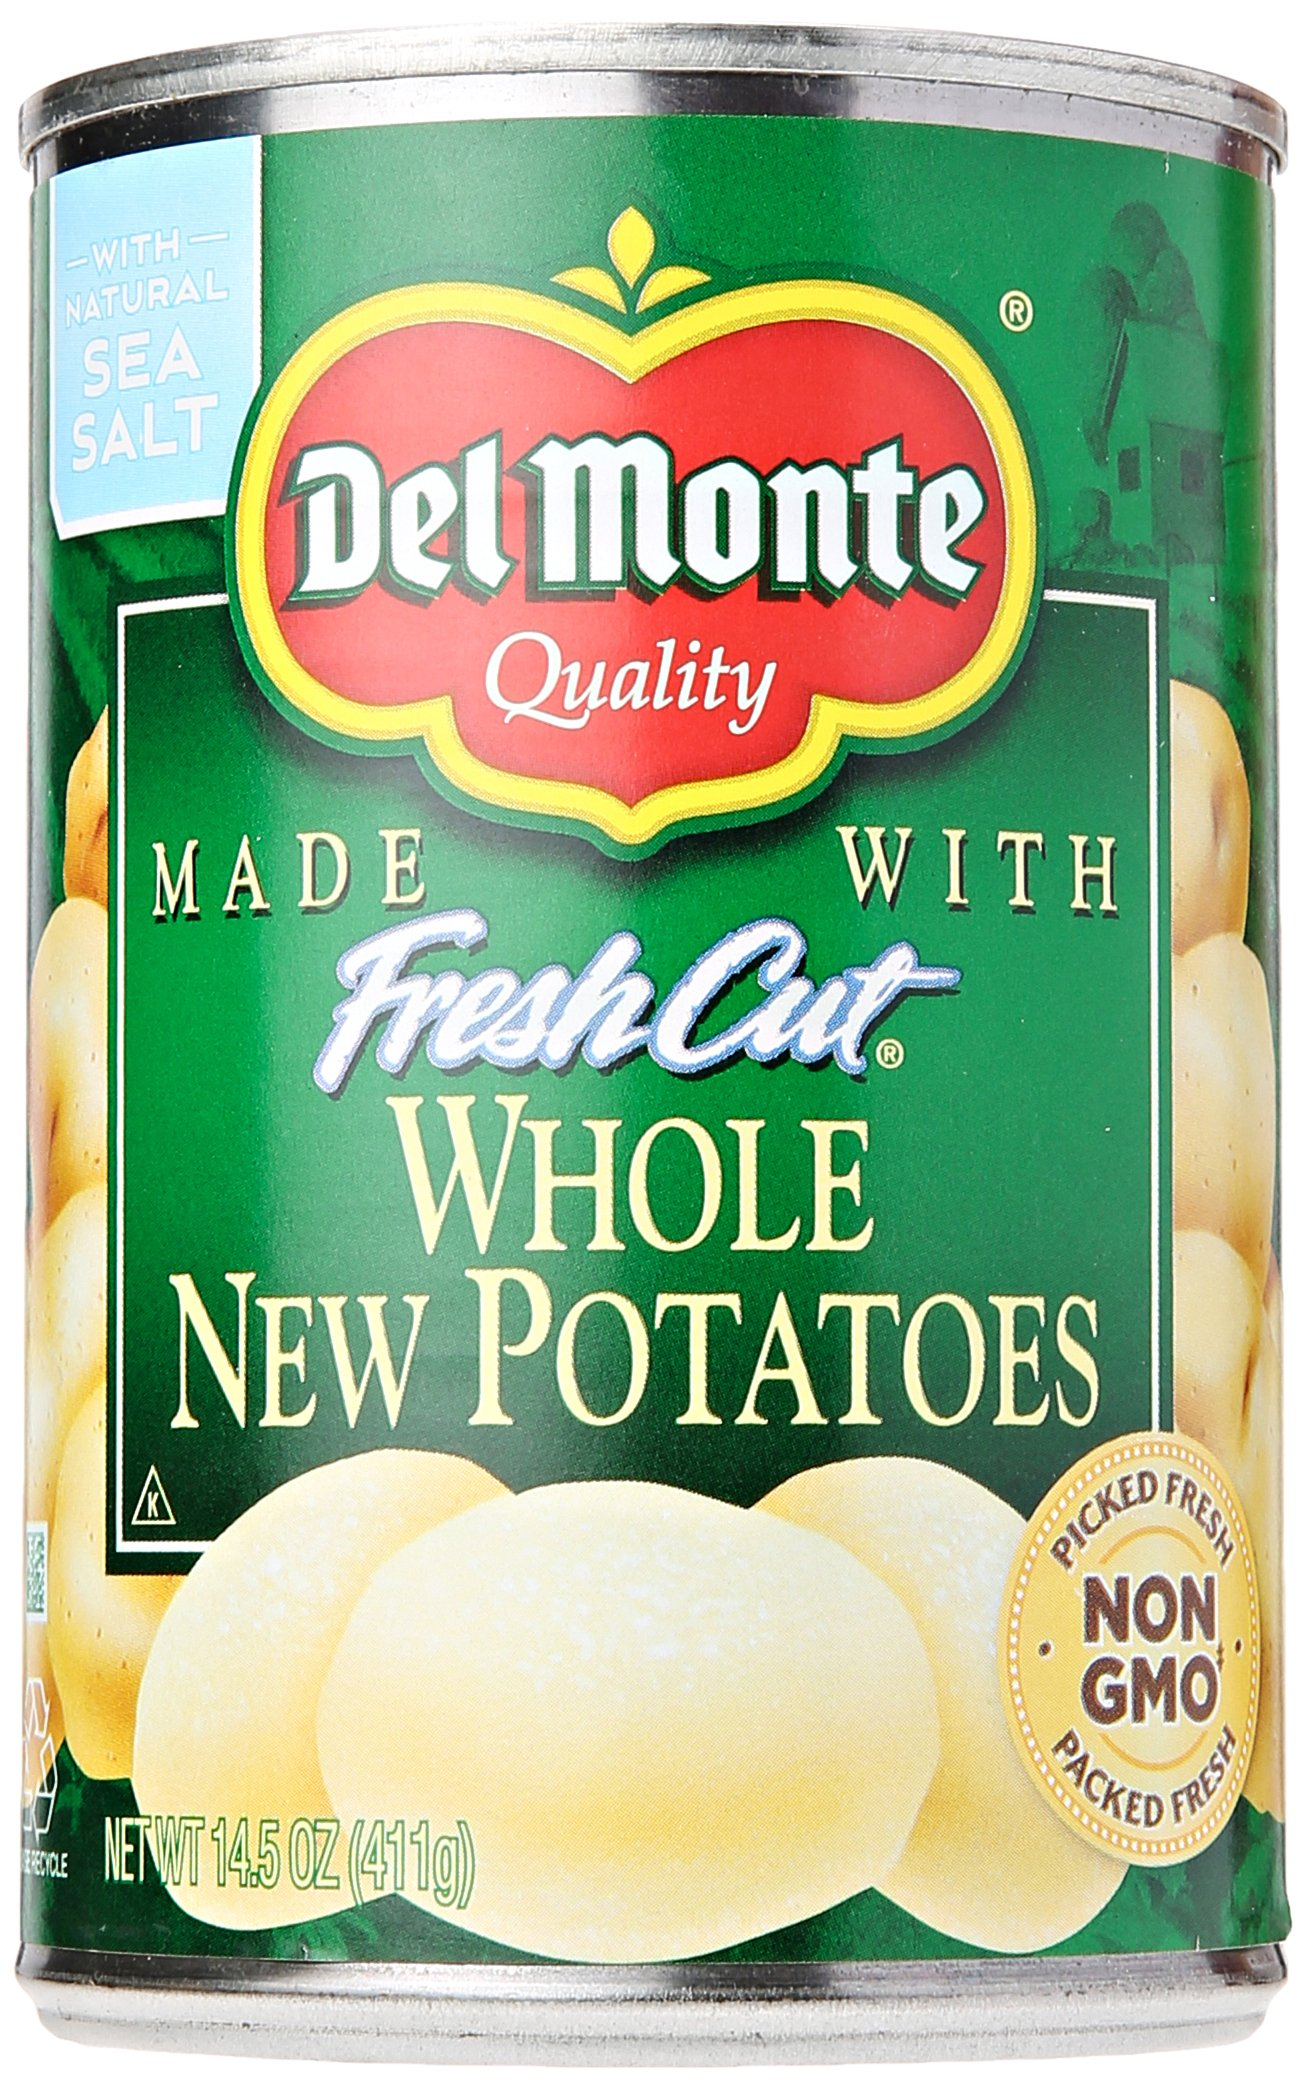 Del Monte Foods Whole New Potatoes, 14.5 oz by Del Monte Foods